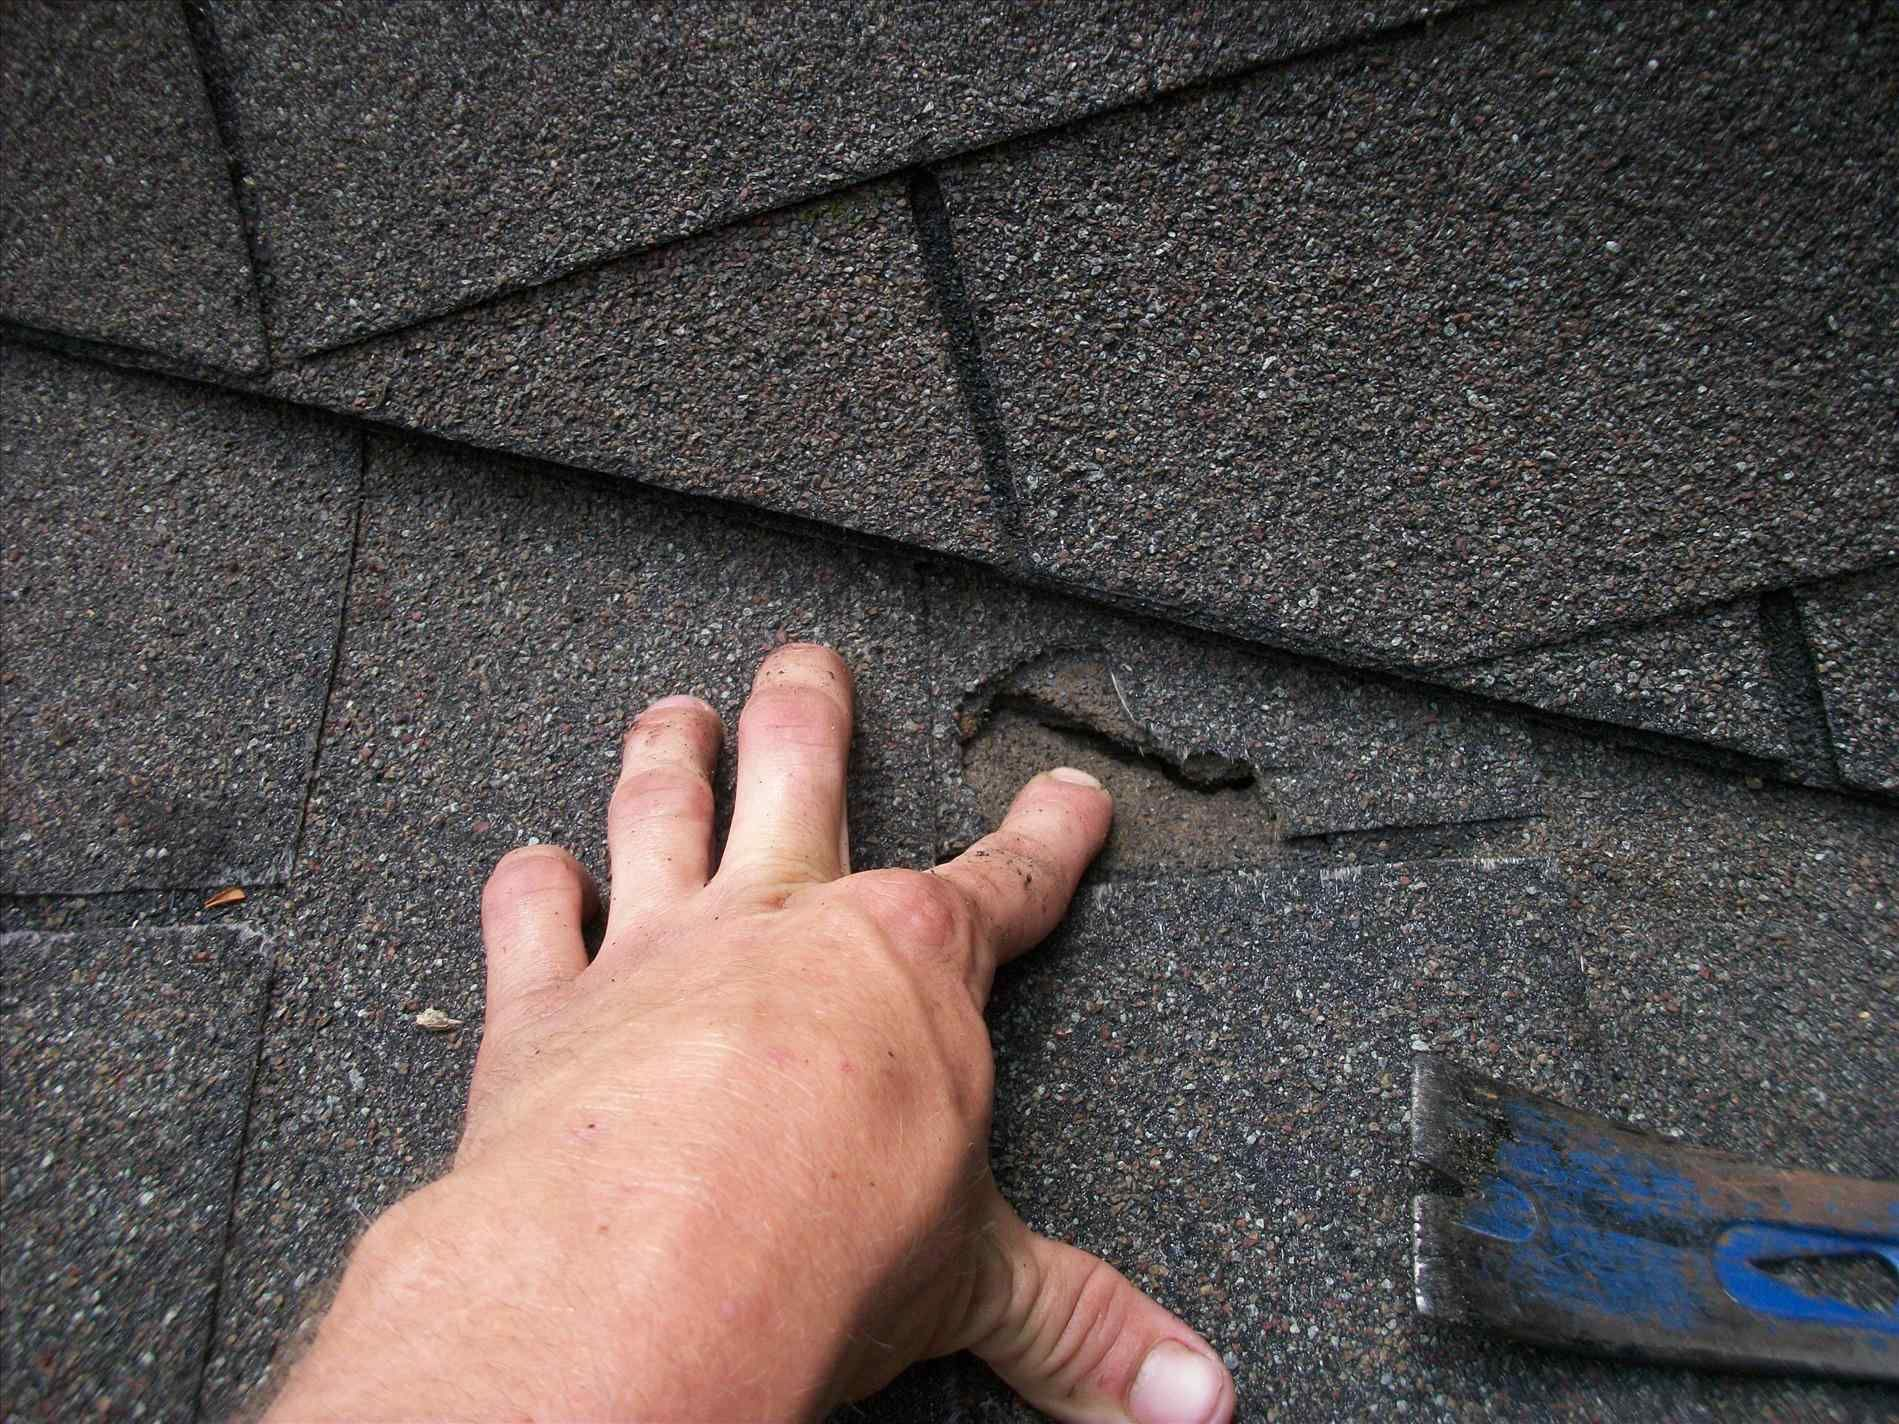 Patching Roof Shingles Roof Repair Roofing Roof Problems